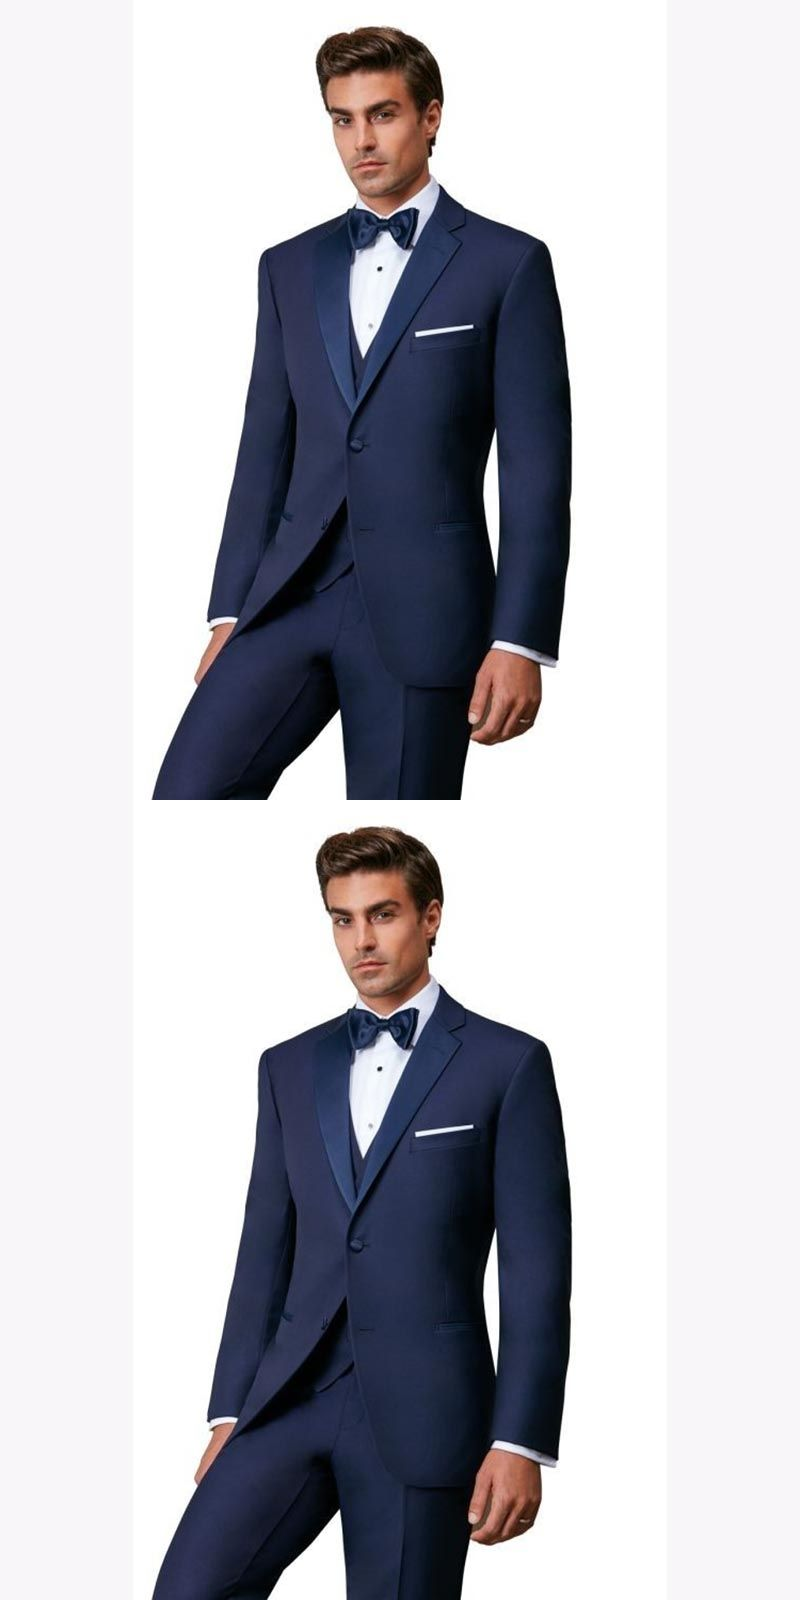 ce88f64c877 New latest coat pant designs Blue Mens Dinner Prom Suits costume homme  Groomsmen Wedding Blazer Suits (Jacket+Pants+Vest+Tie)